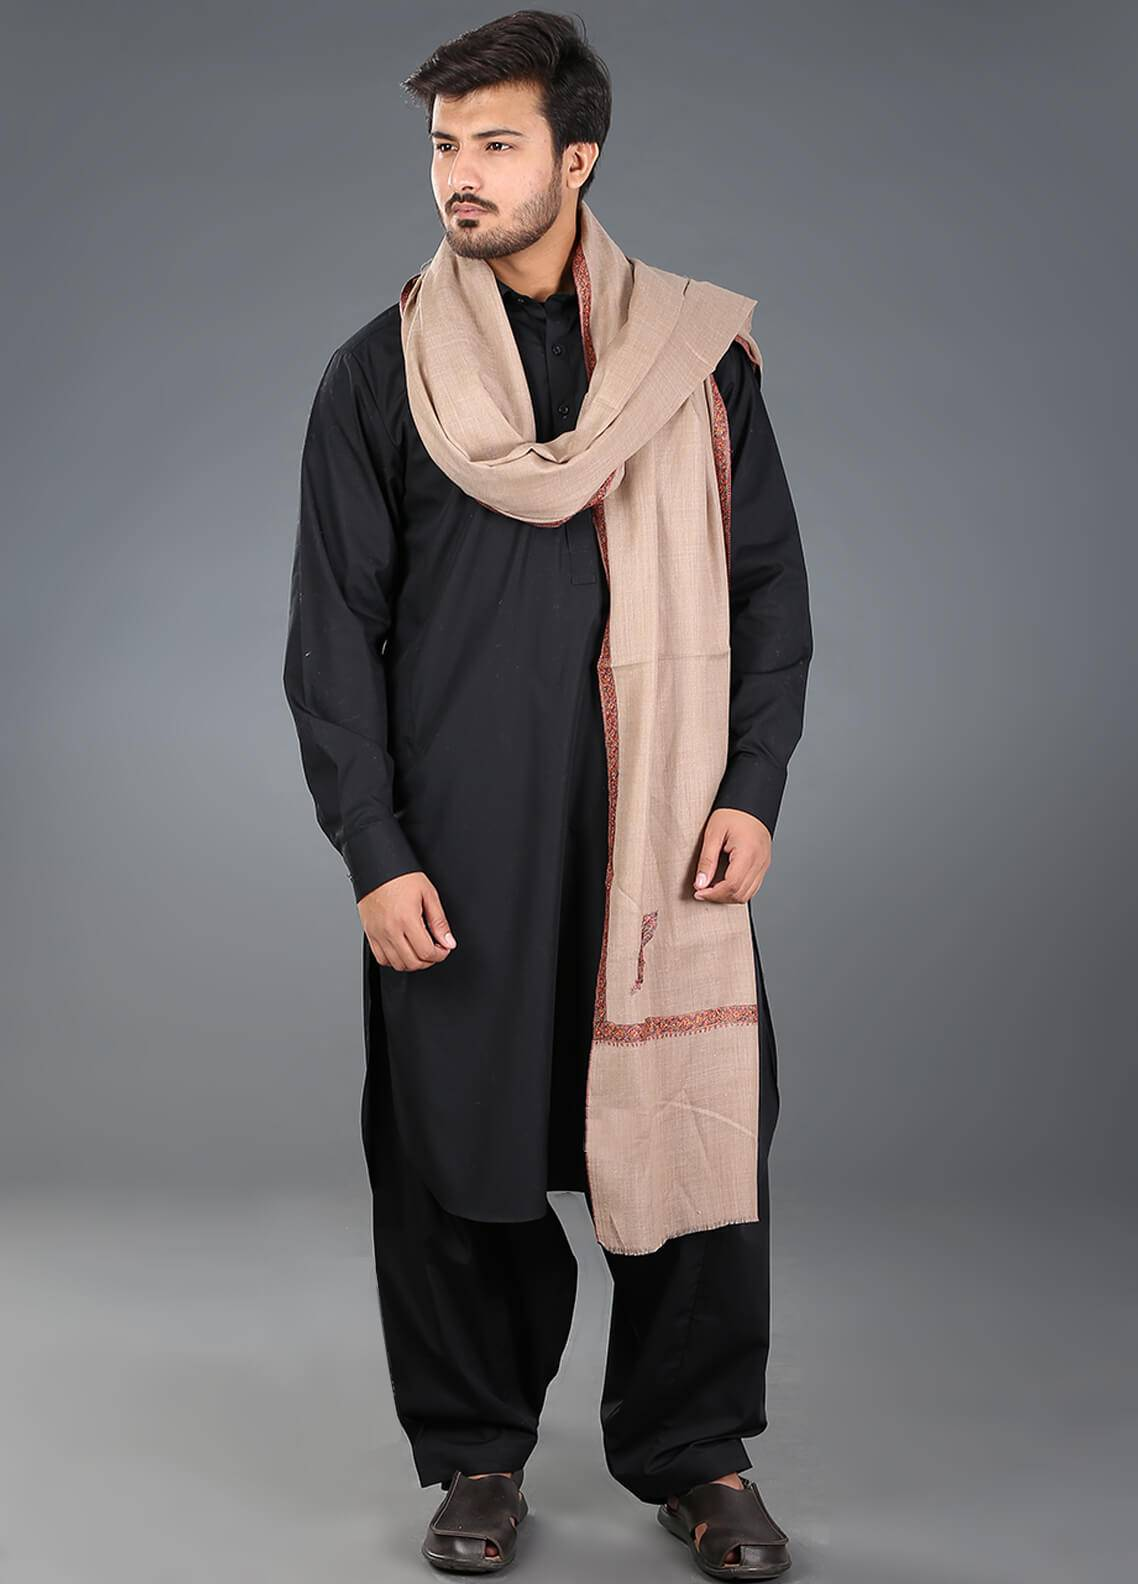 Sanaulla Exclusive Range Hand Work Embroidered Pashmina  Men's Shawl 09 - Winter Collection